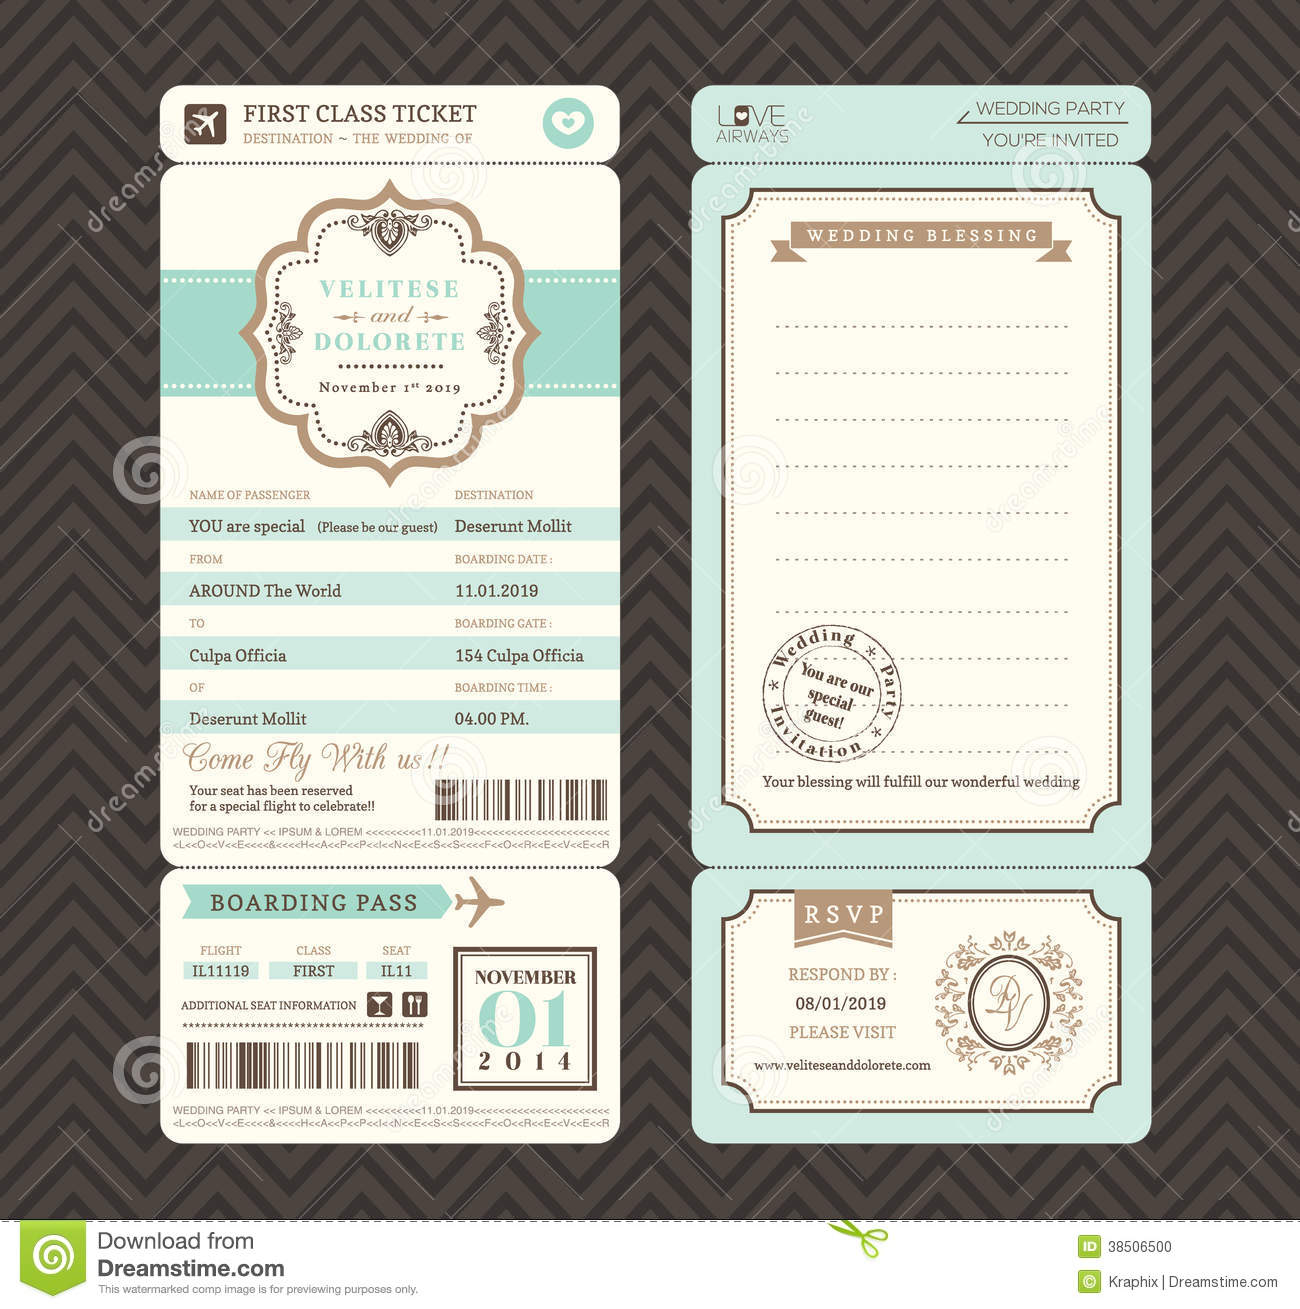 Vintage Style Boarding Pass Ticket Wedding Invitation